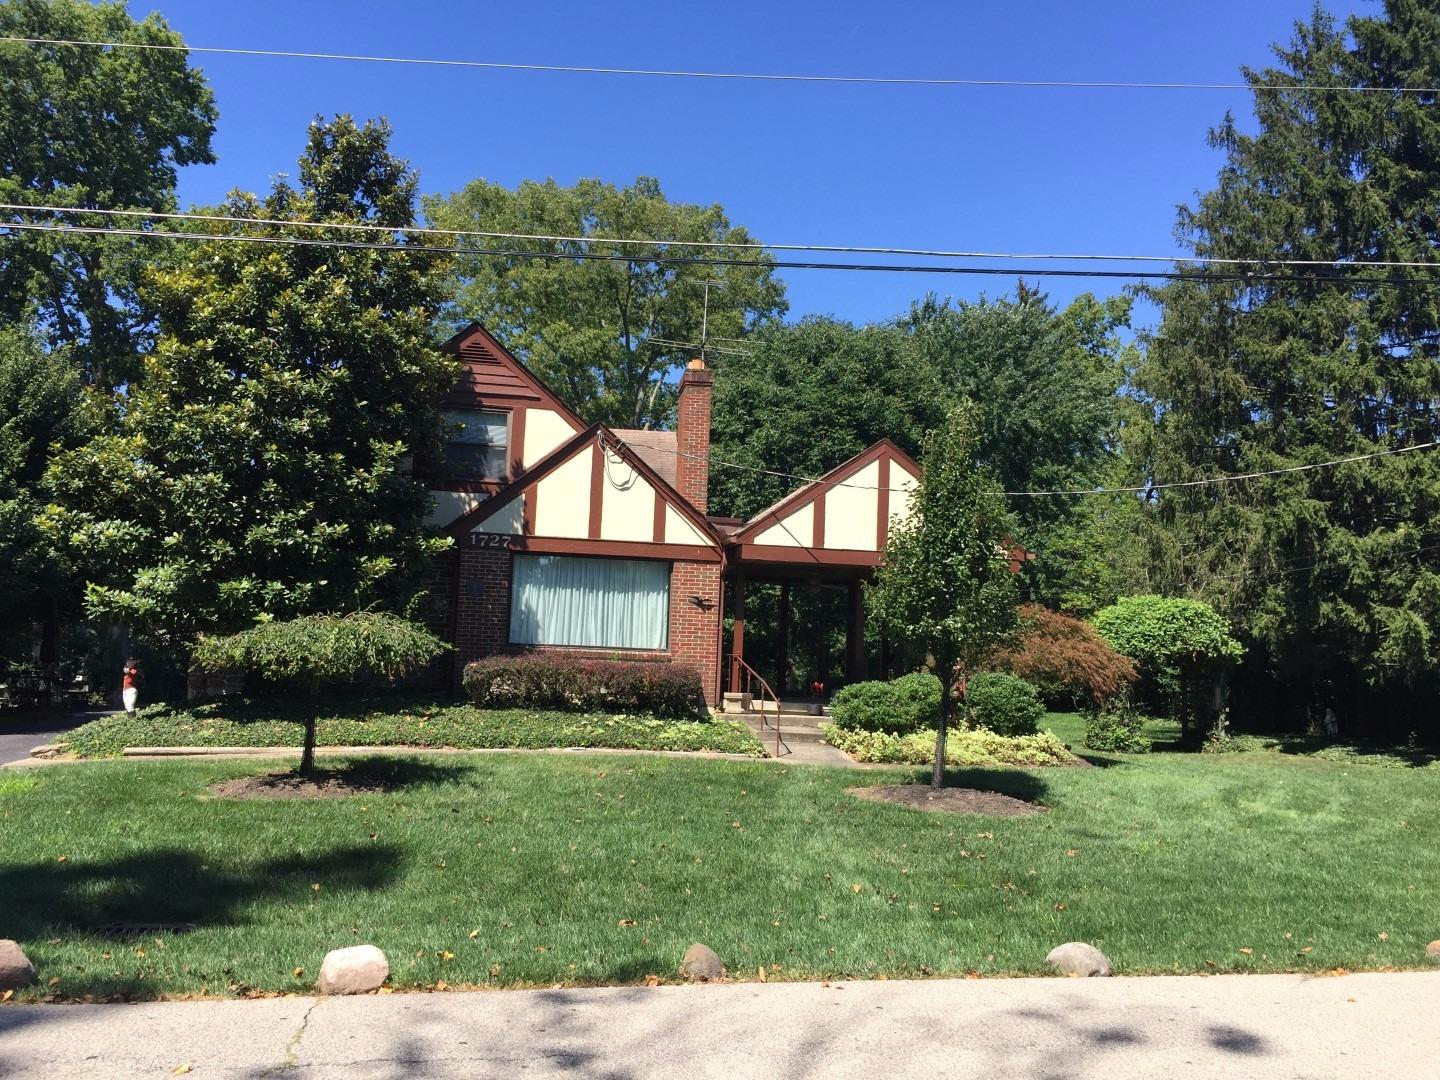 mount washington single personals Four bedroom single-family homes for sale in mount washington, ky on oodle classifieds join millions of people using oodle to find local real estate listings, homes for sales, condos for.